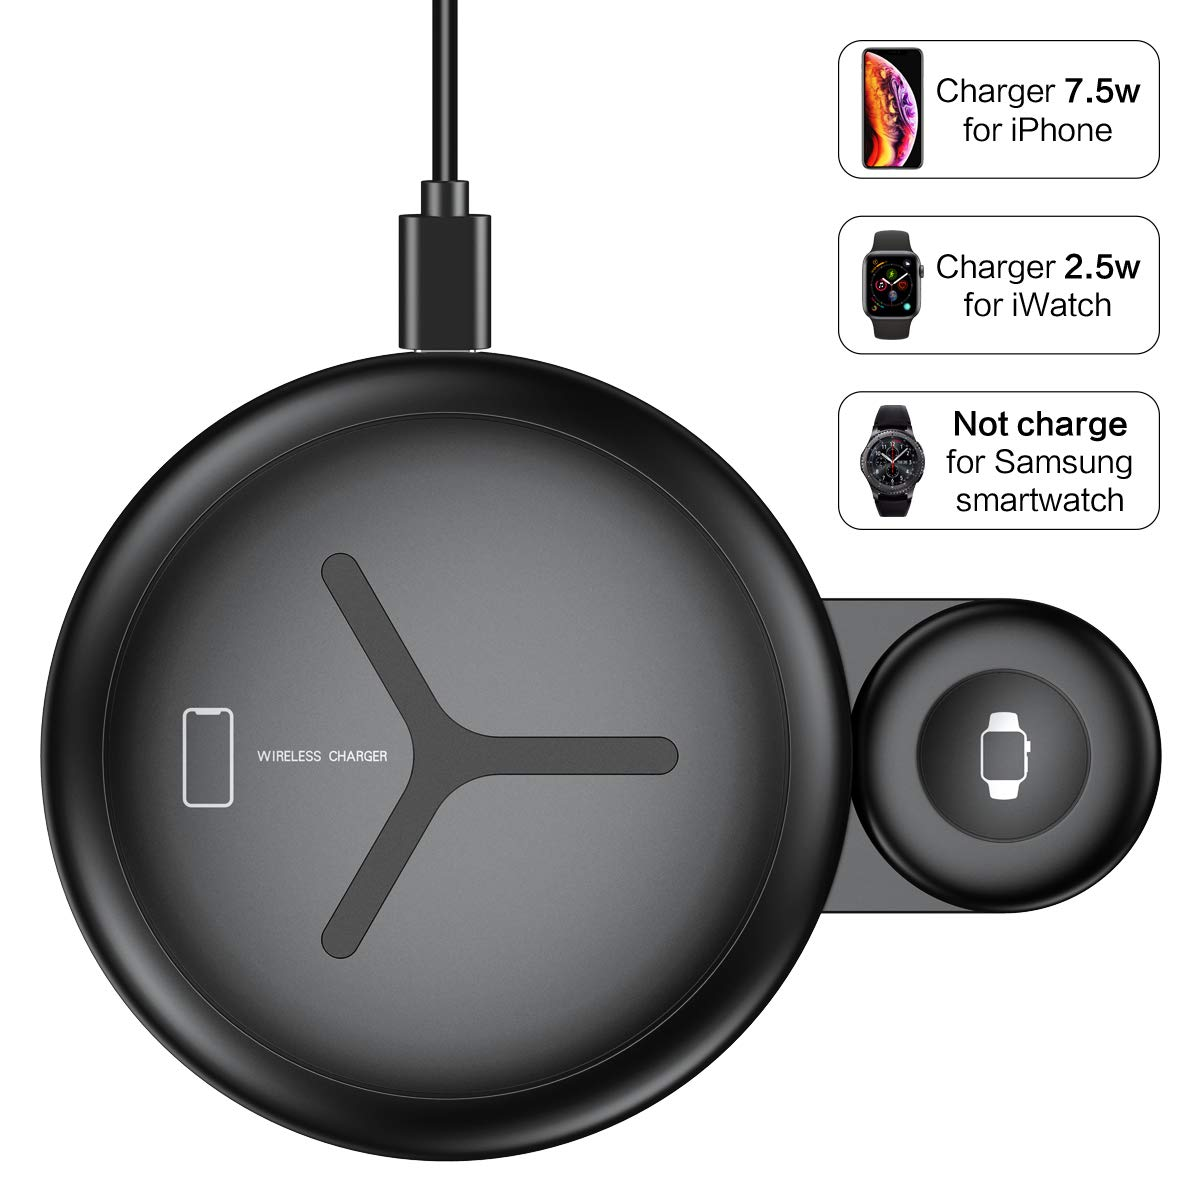 2 in 1 Wireless Charger FLOVEME 10W Wireless Charging Pad Qi Fast Wireless Charging Station Compatible for Apple Watch Series 4/3/2/1 iPhone Xs Max/XR/X/8 Plus/8 Samsung Note 9/8 and More by FLOVEME